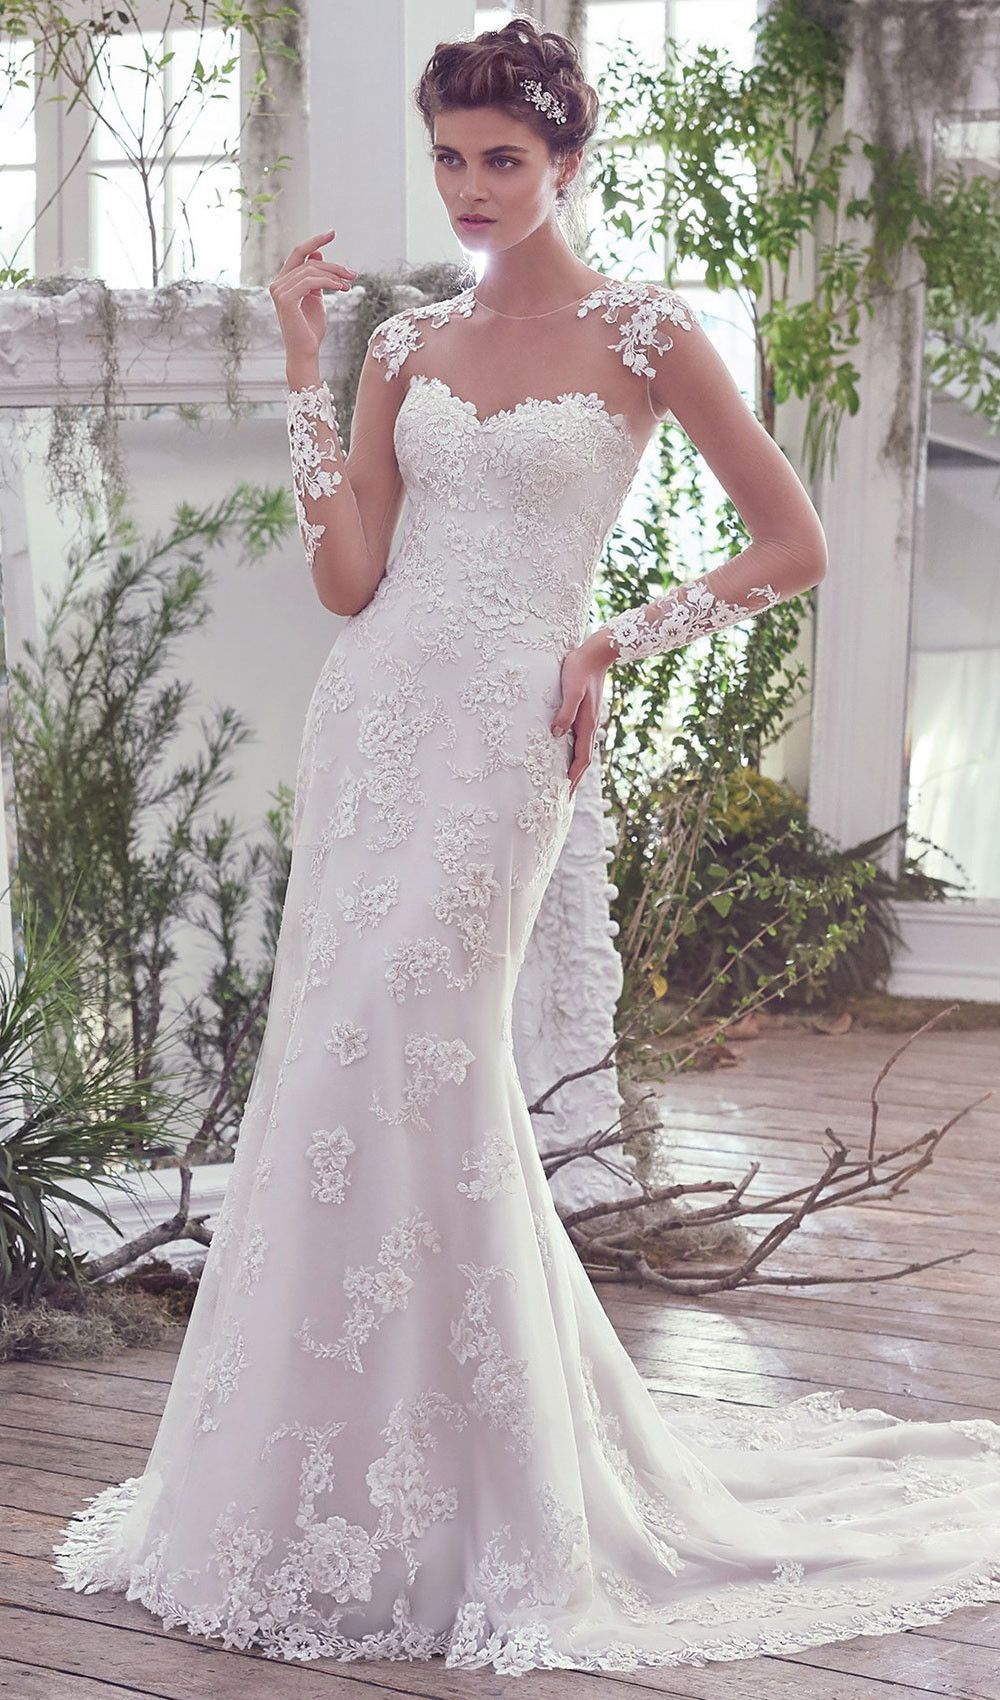 Try This Sheath Wedding Dress Finished With Pearl Buttons Over